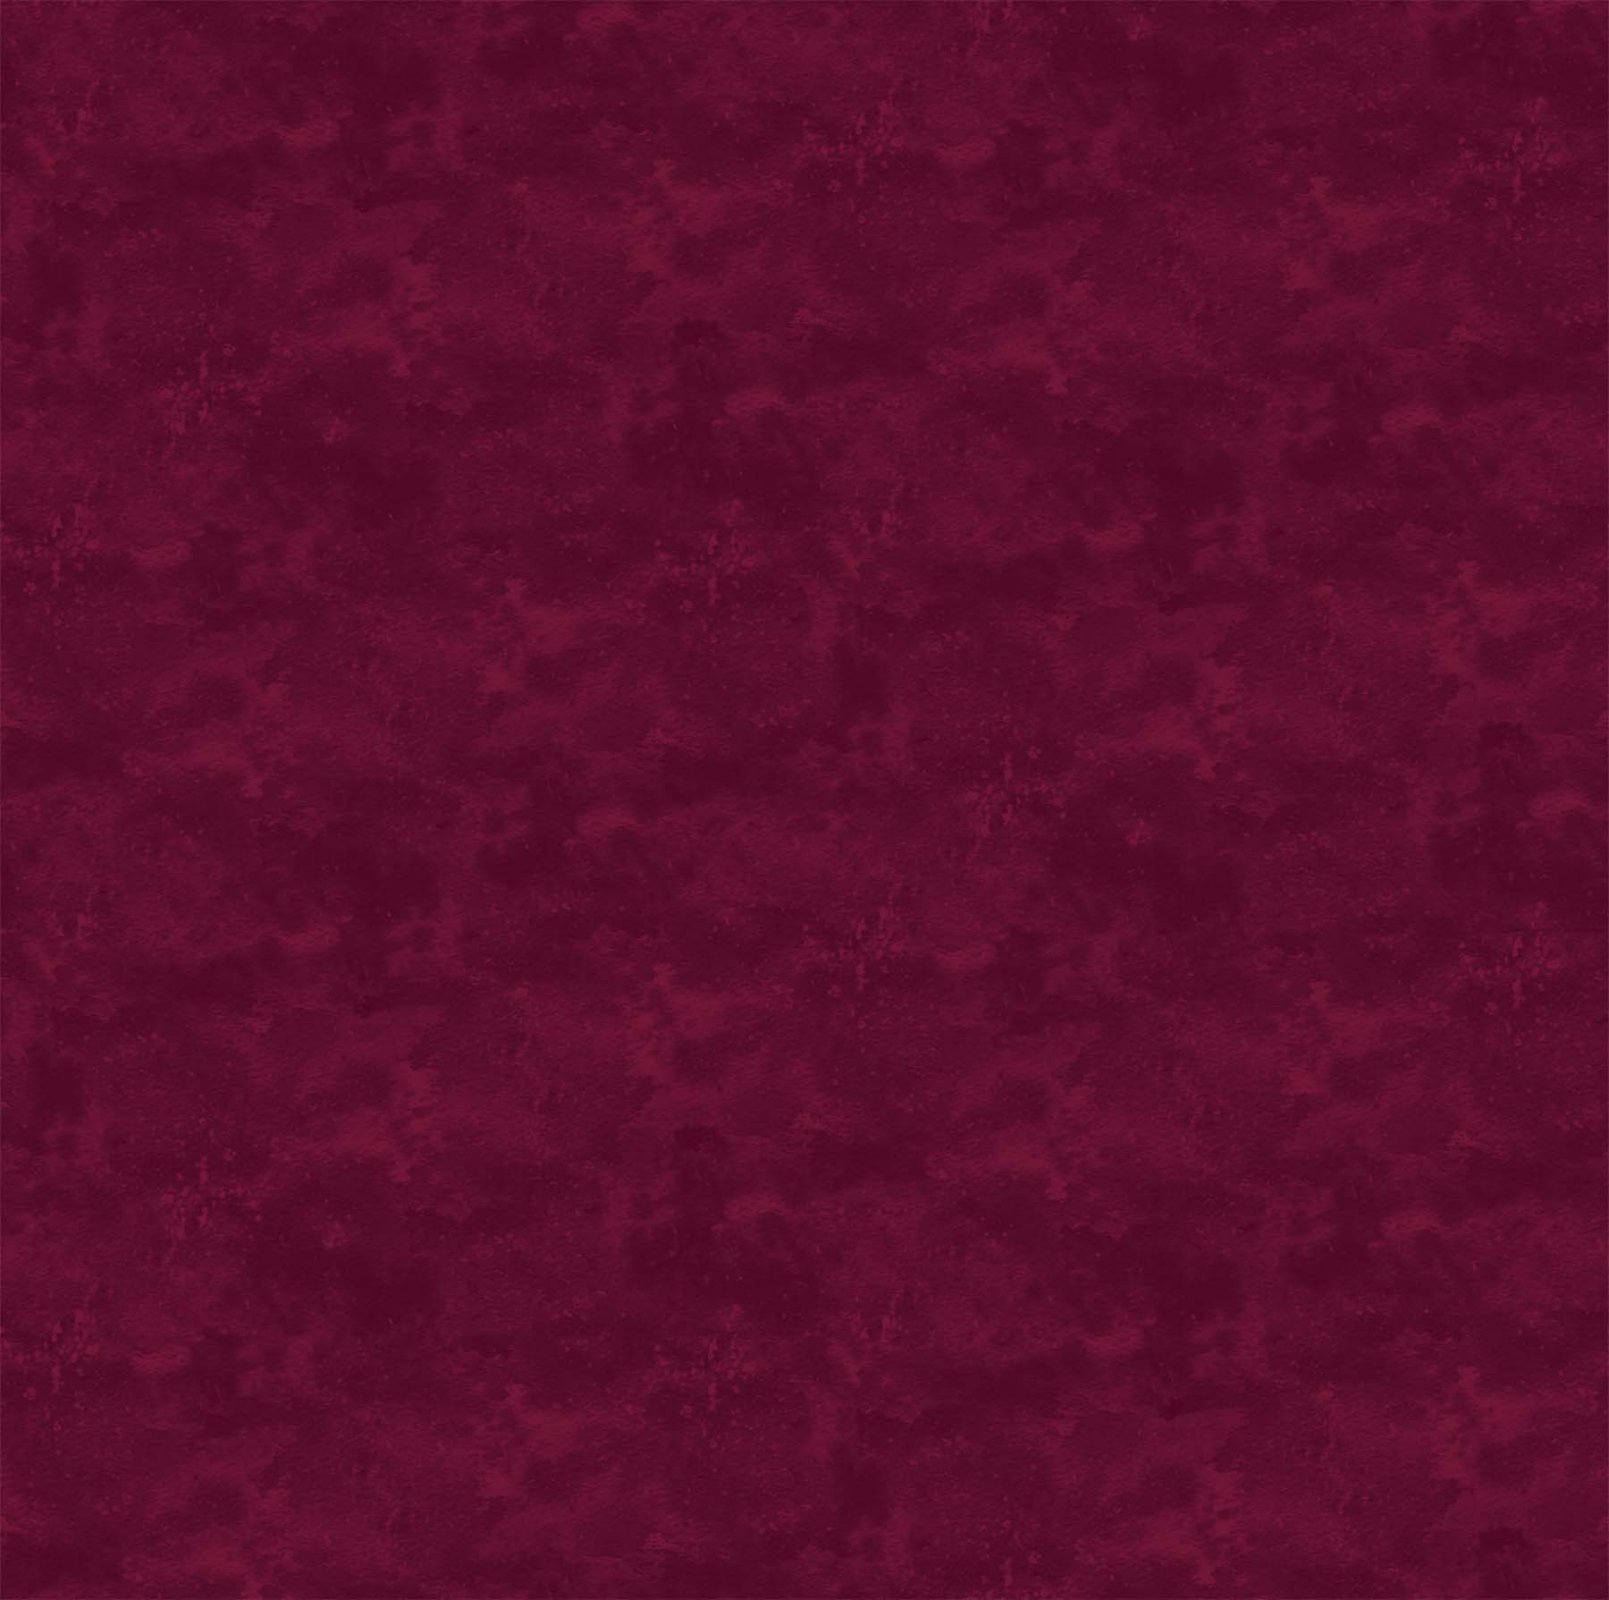 Toscana by Northcott - Roasted Beet - 9020-281